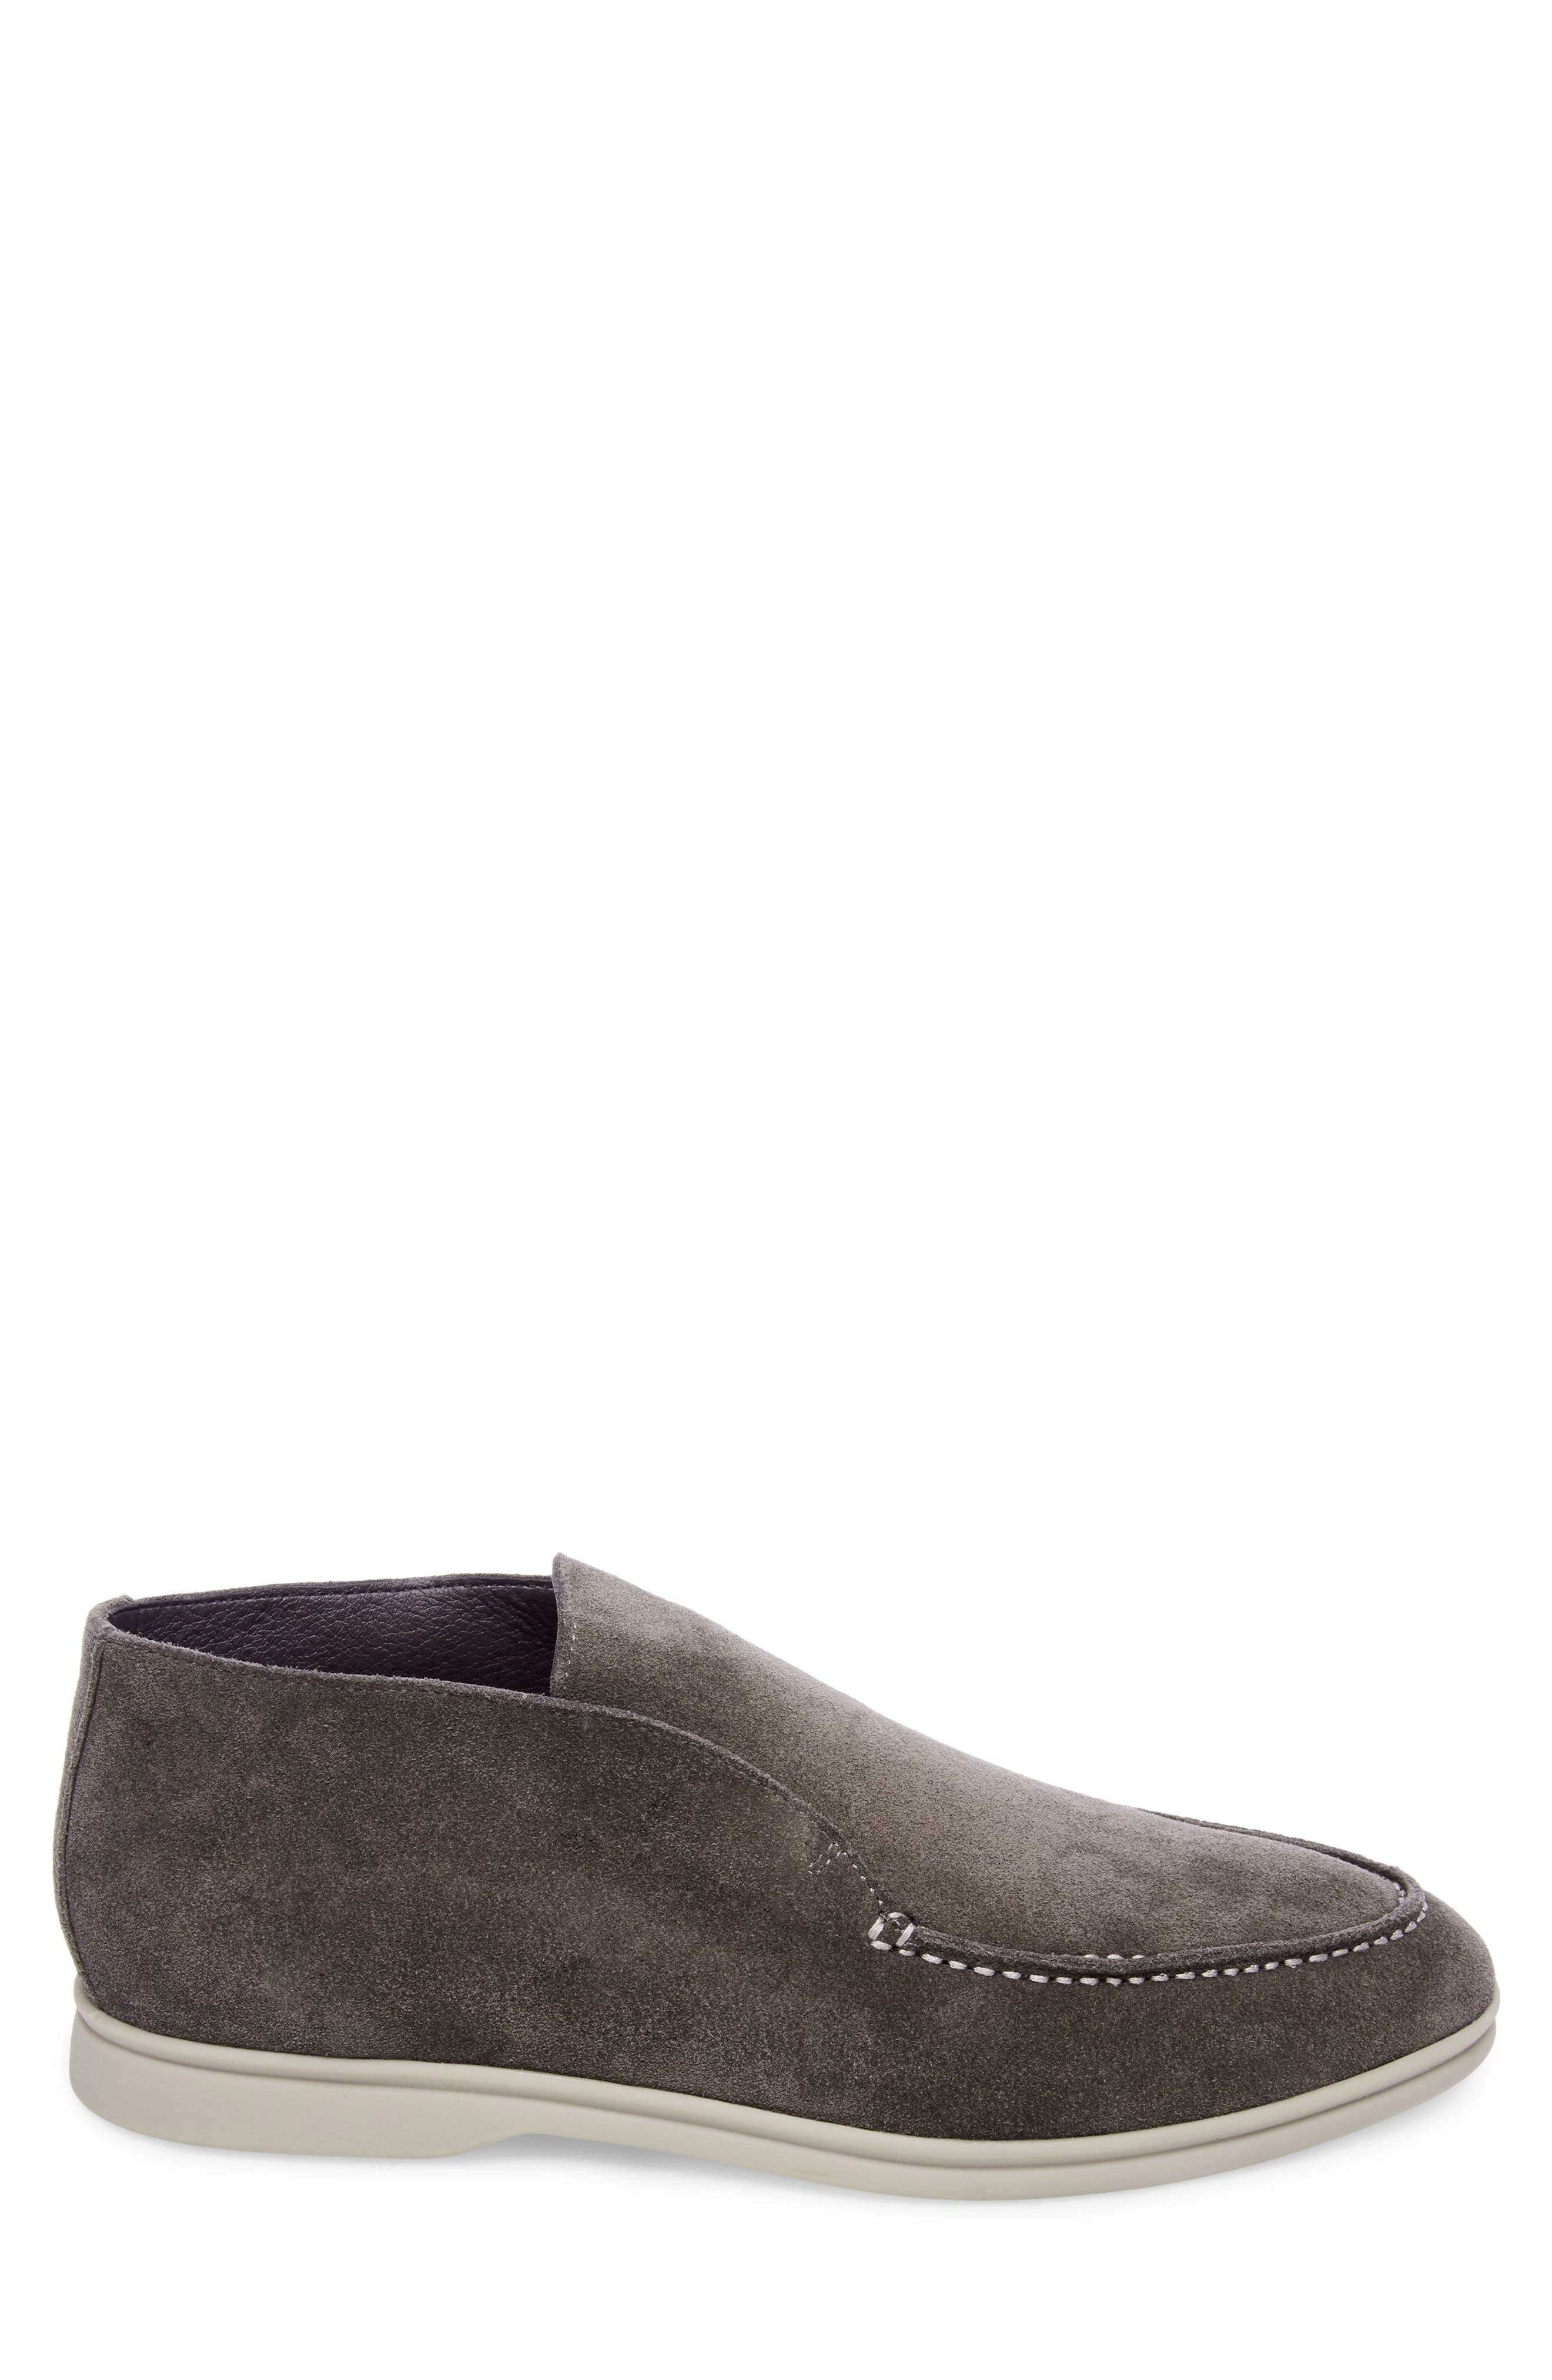 Lost Boot,                             Alternate thumbnail 3, color,                             Taupe Suede